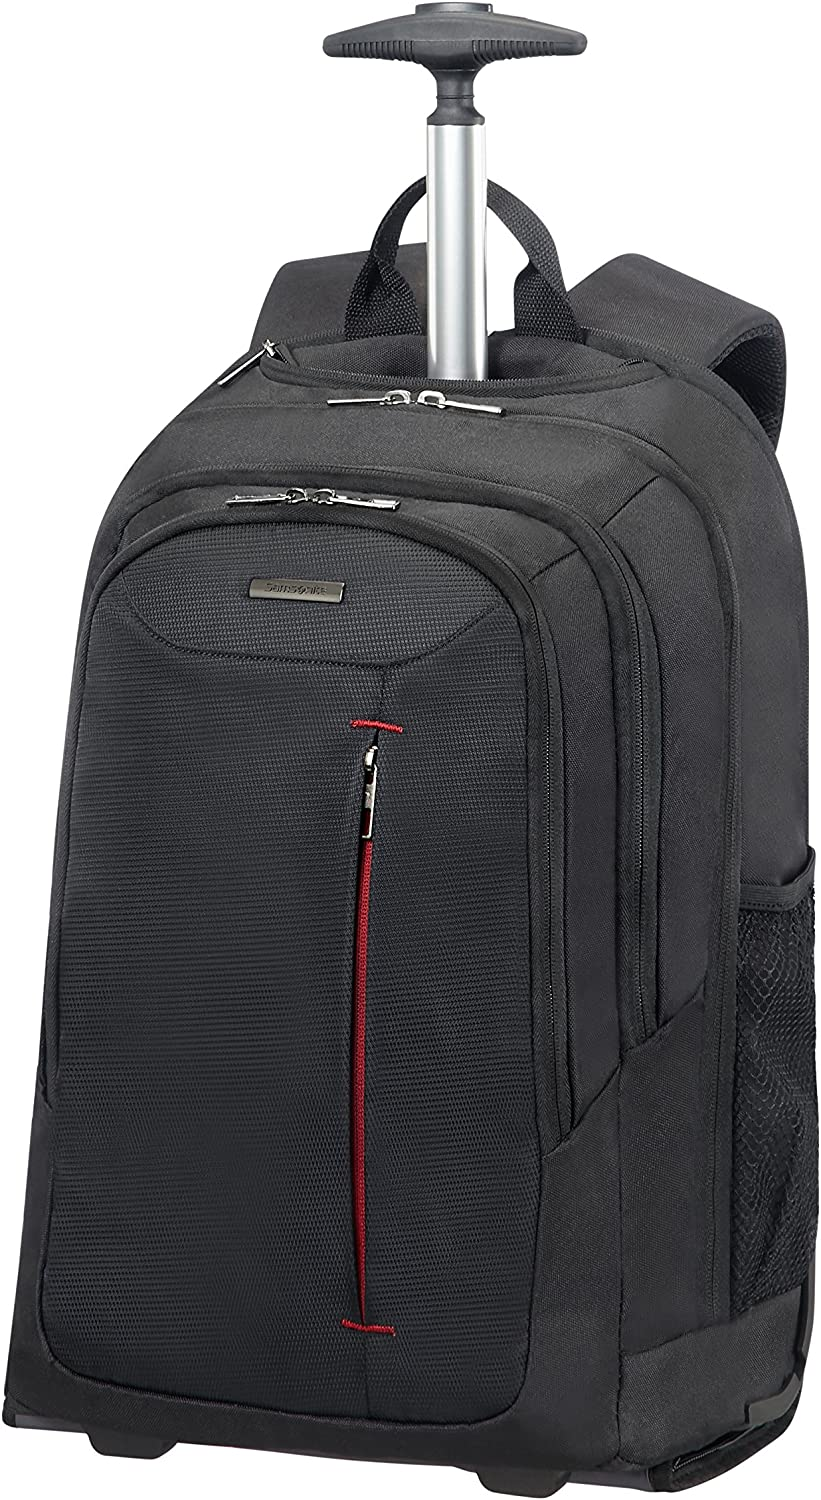 Samsonite - Guardit - Wheeled Mochila para Laptop 48 cm, 27 L, Negro